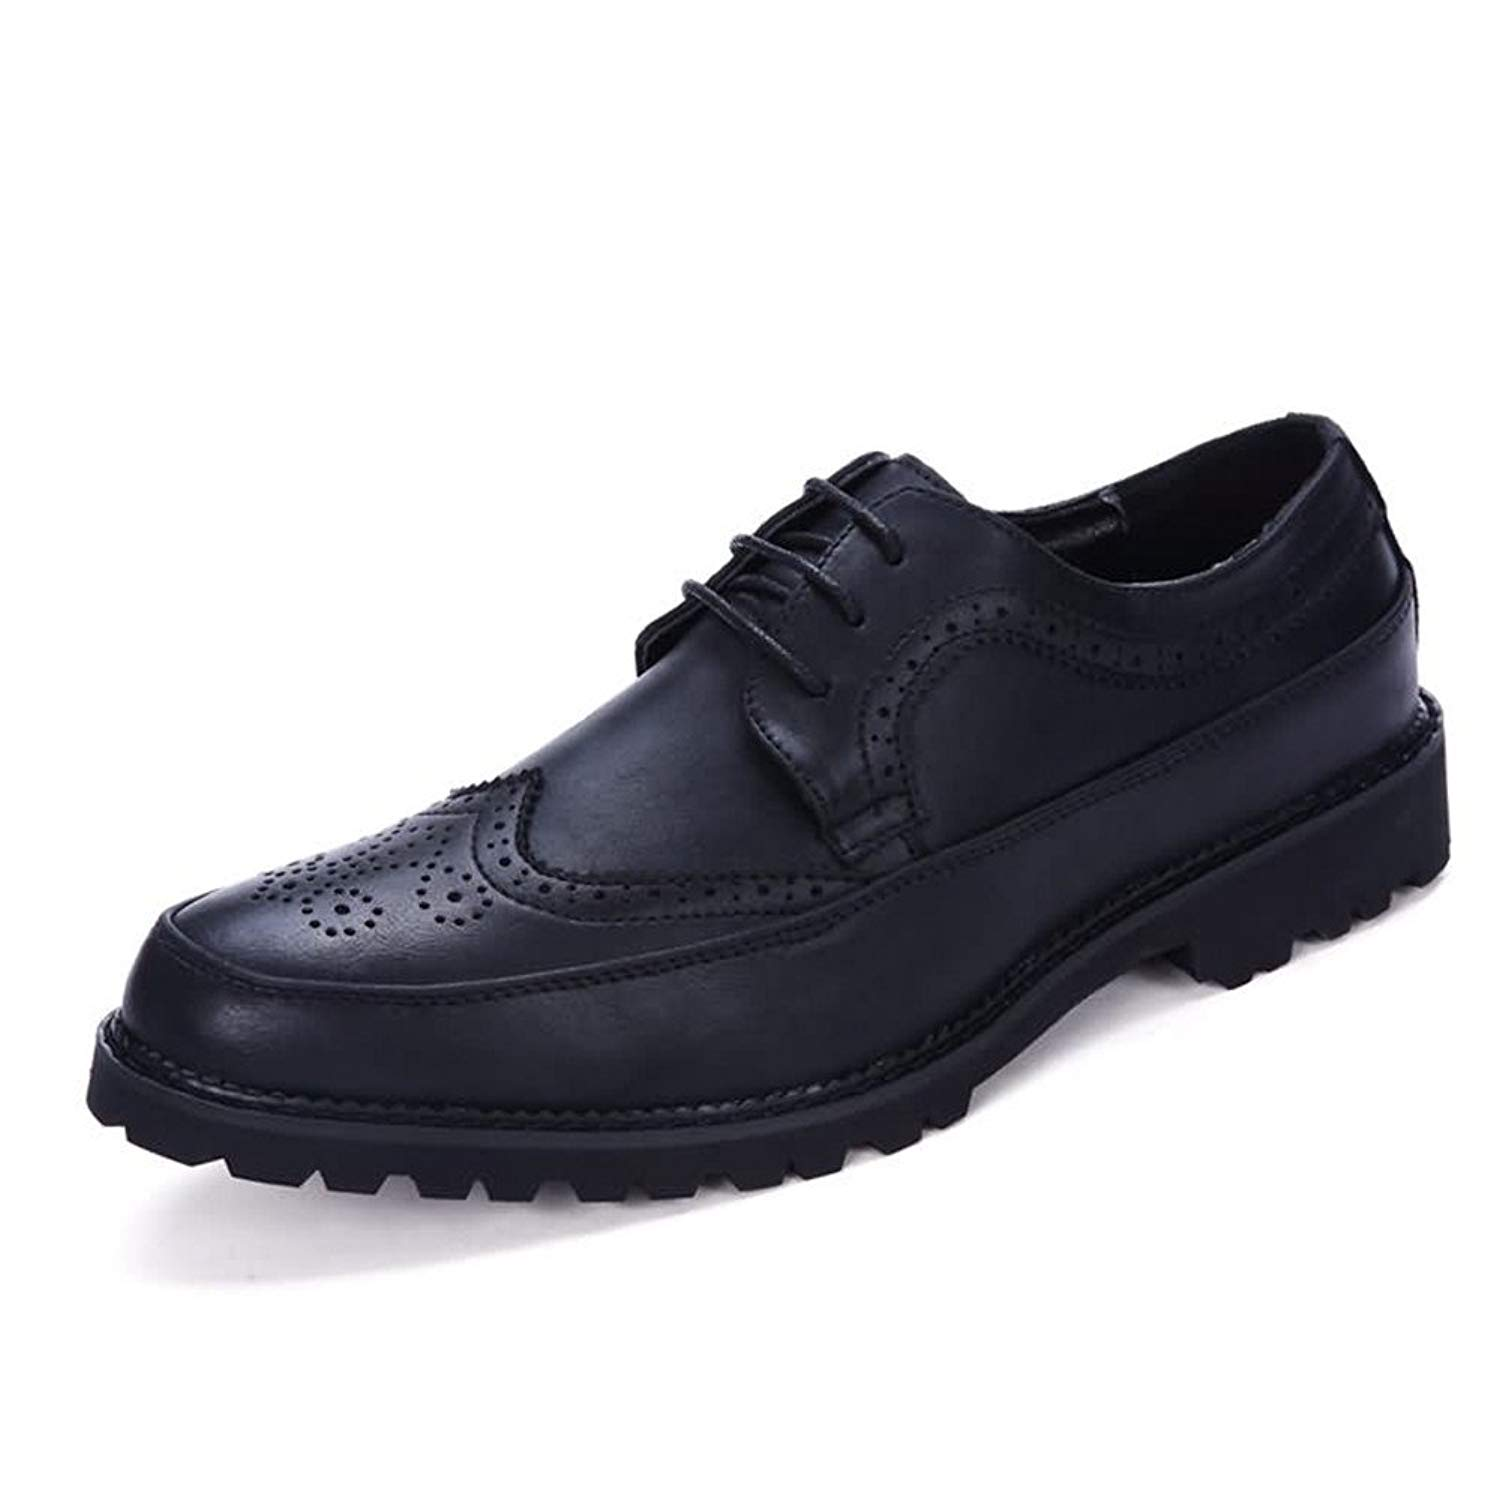 Muyin Men's Oxford Flat Heel Lace up PU Leather Leisure Tooling Shoes